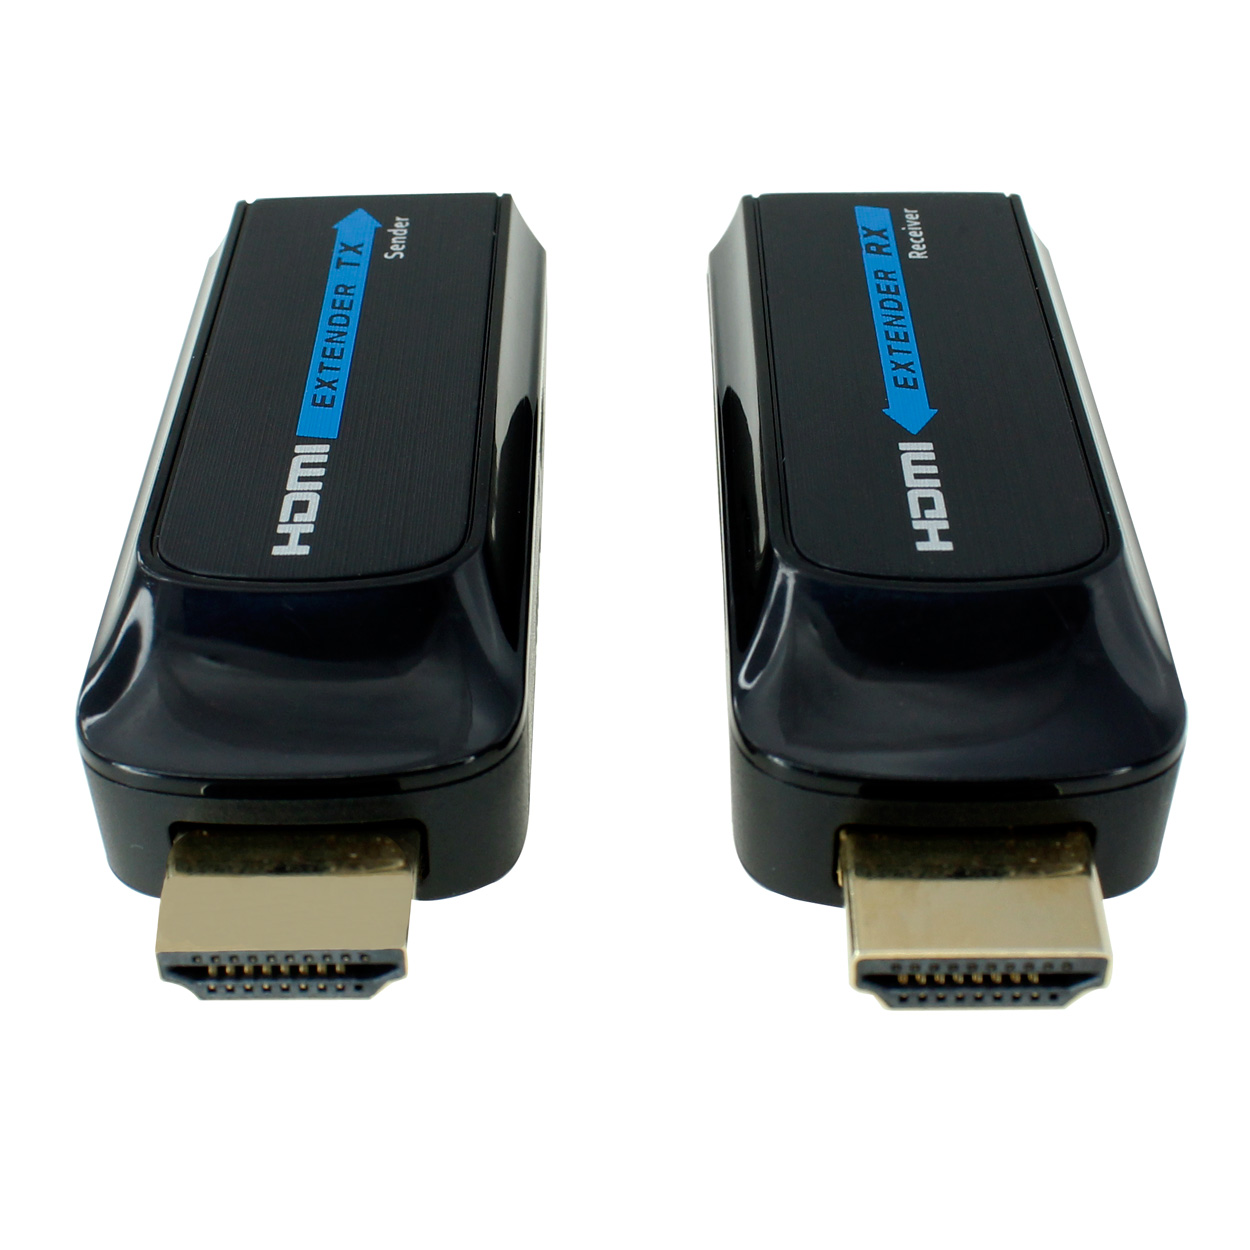 HDMI Extender Over Cat6 Cable (Up to 165ft at 1080p)